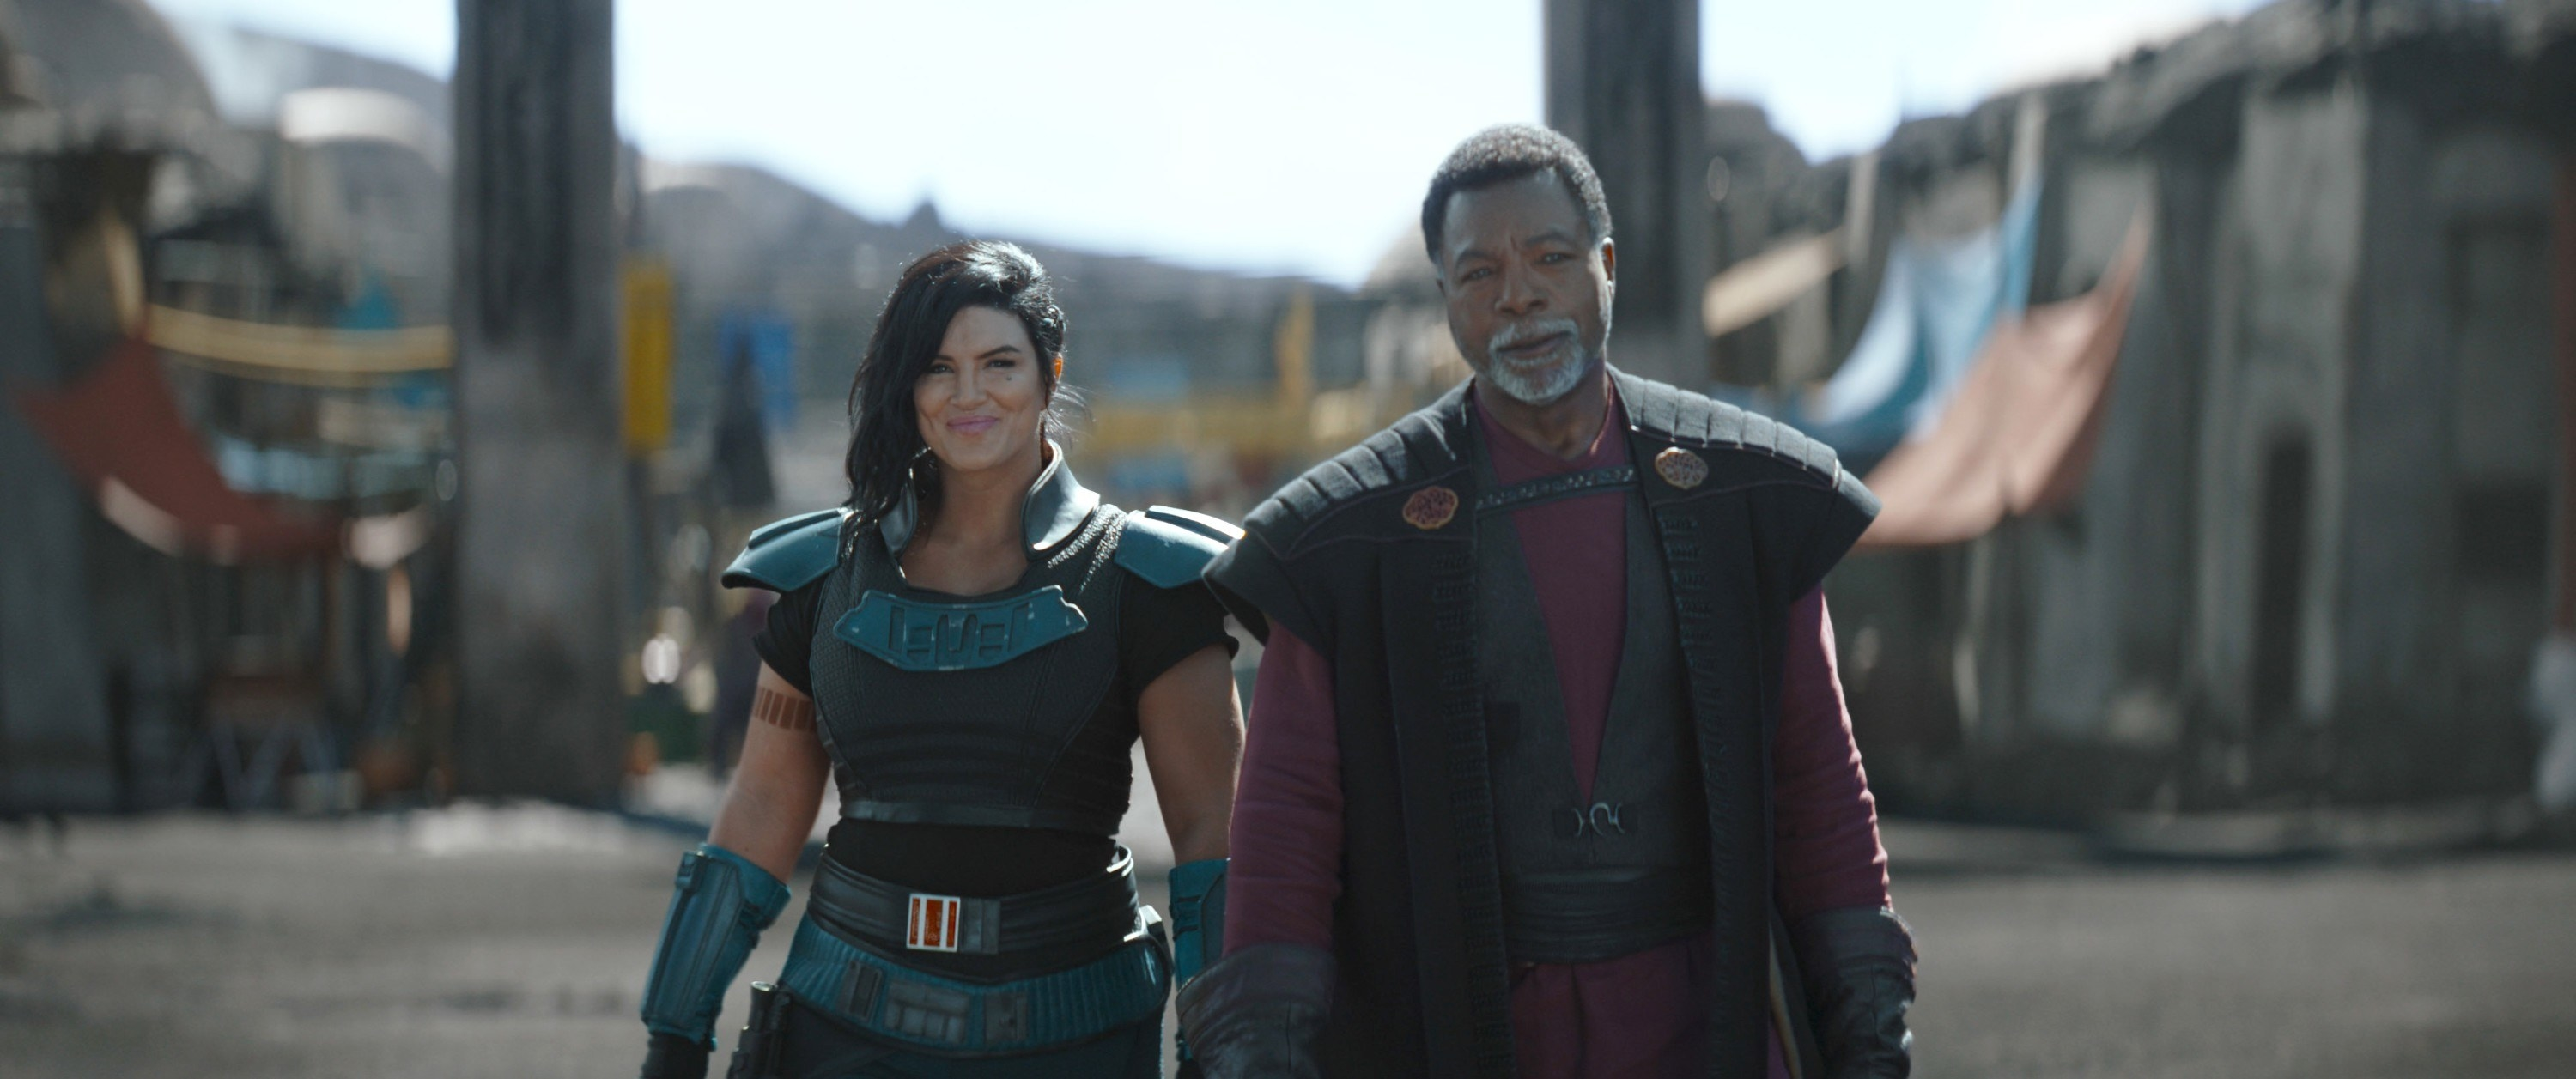 Gina Carano and Carl Weathers walk side by side in The Mandalorian